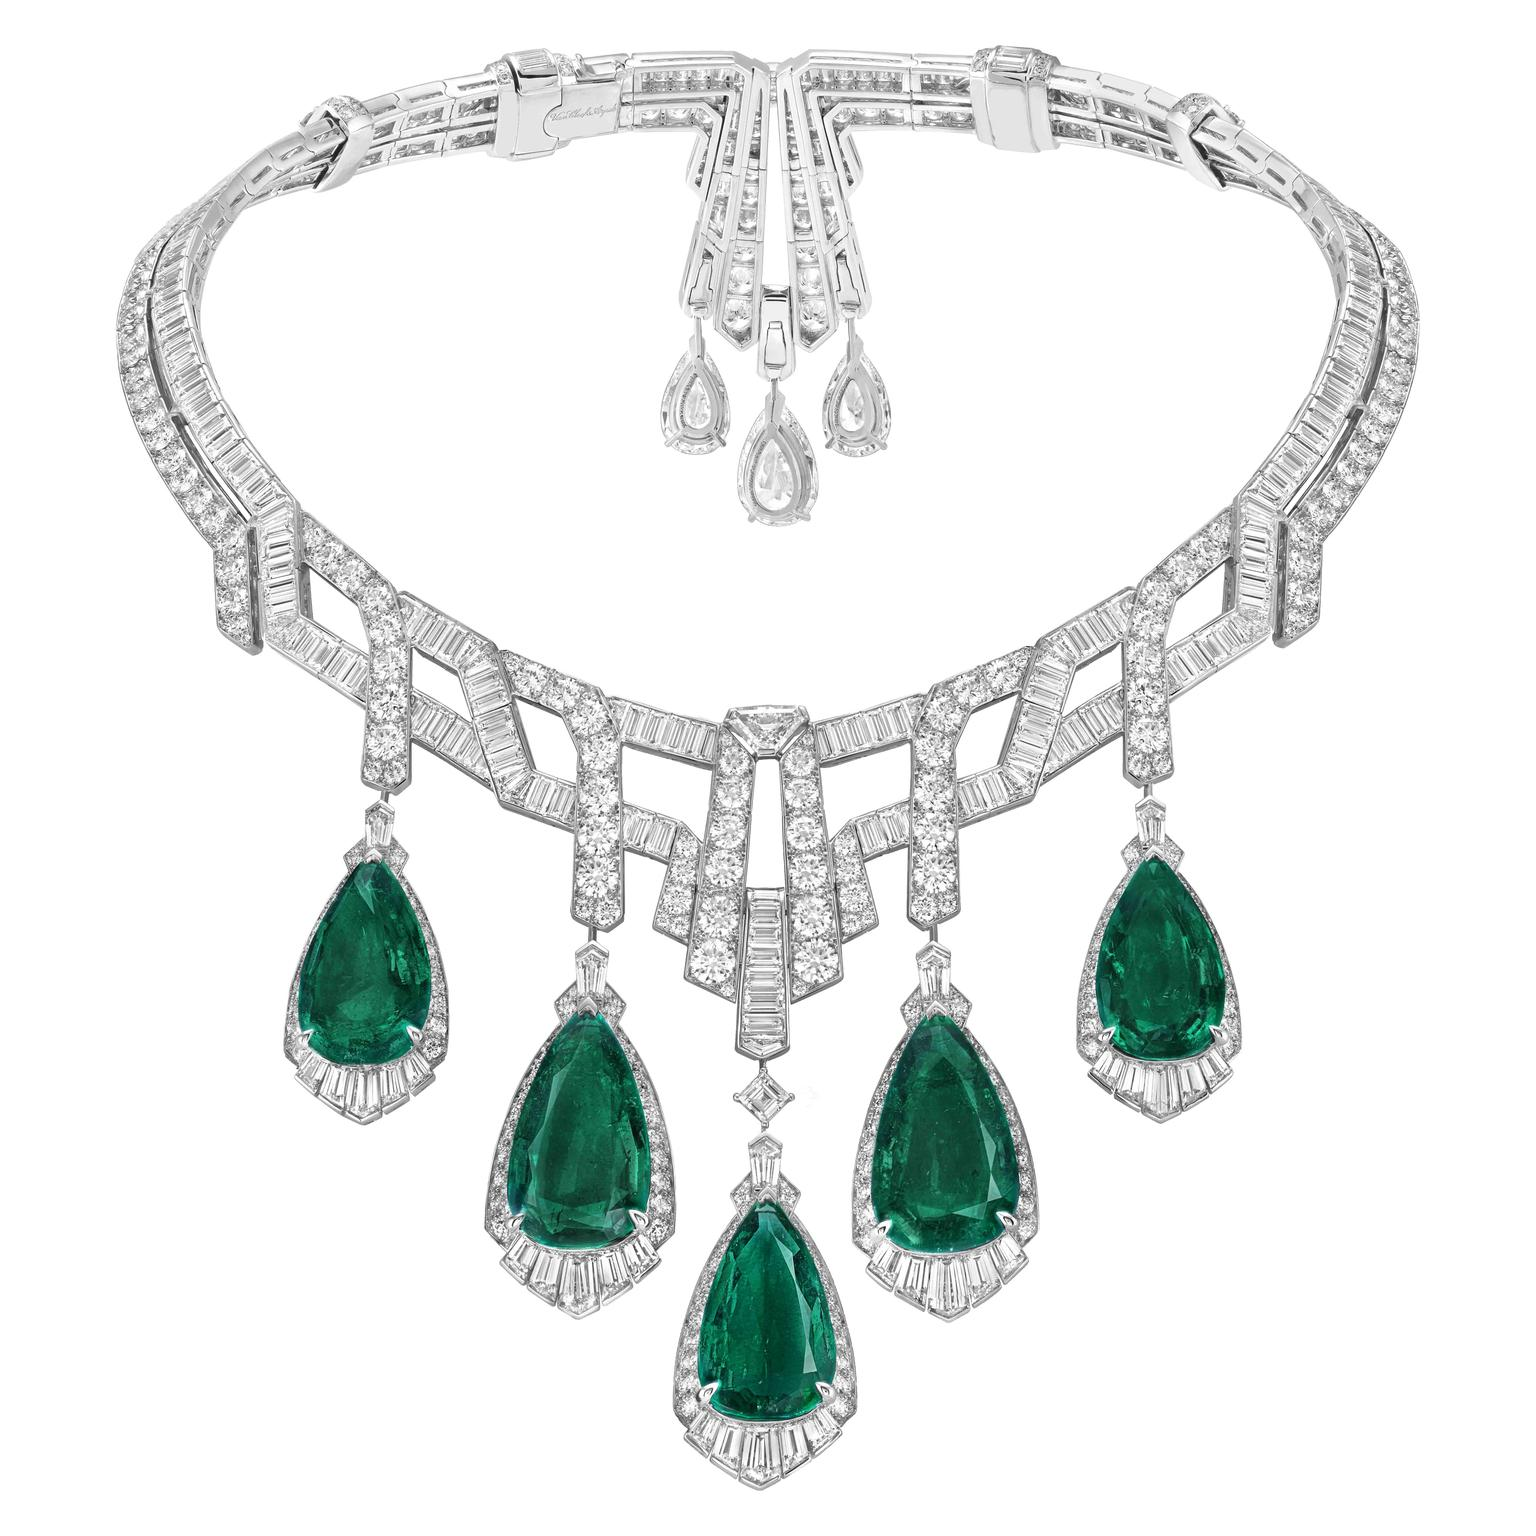 Van Cleef & Arpels Merveilles d'émeraudes necklace with detachable pendants